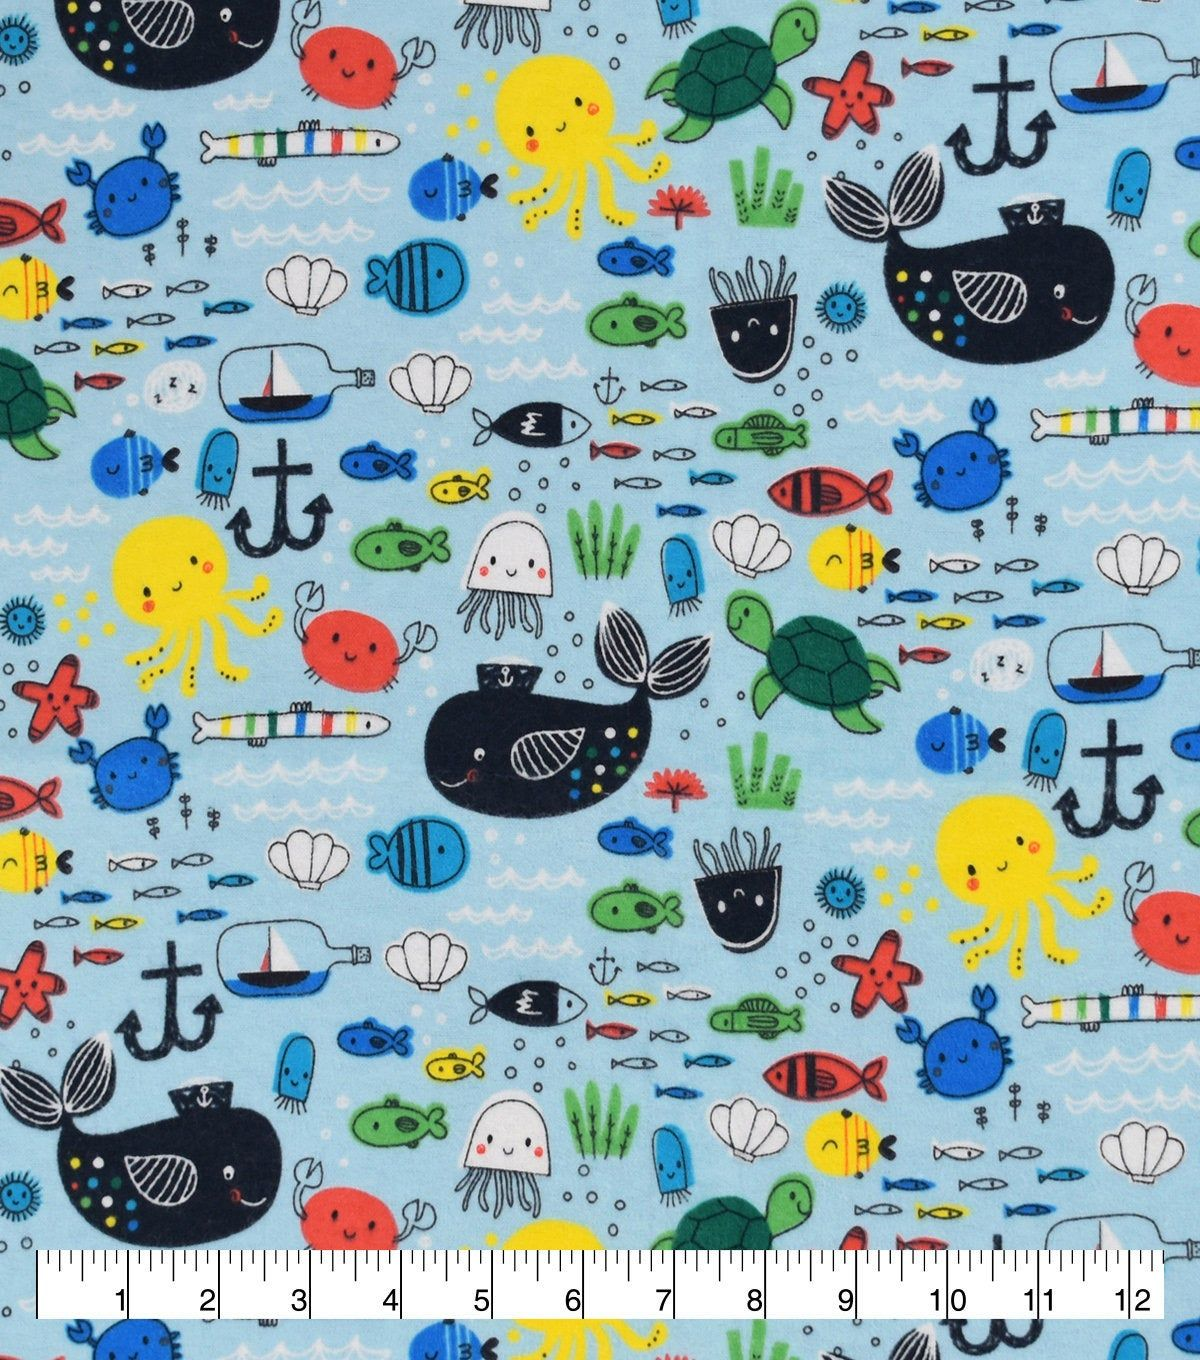 Baby Sea Creatures Fabric By The Yard 100 Cotton Flannel Fabric Only Additional Length Options Available Flannel Fabric Cotton Flannel Fabric